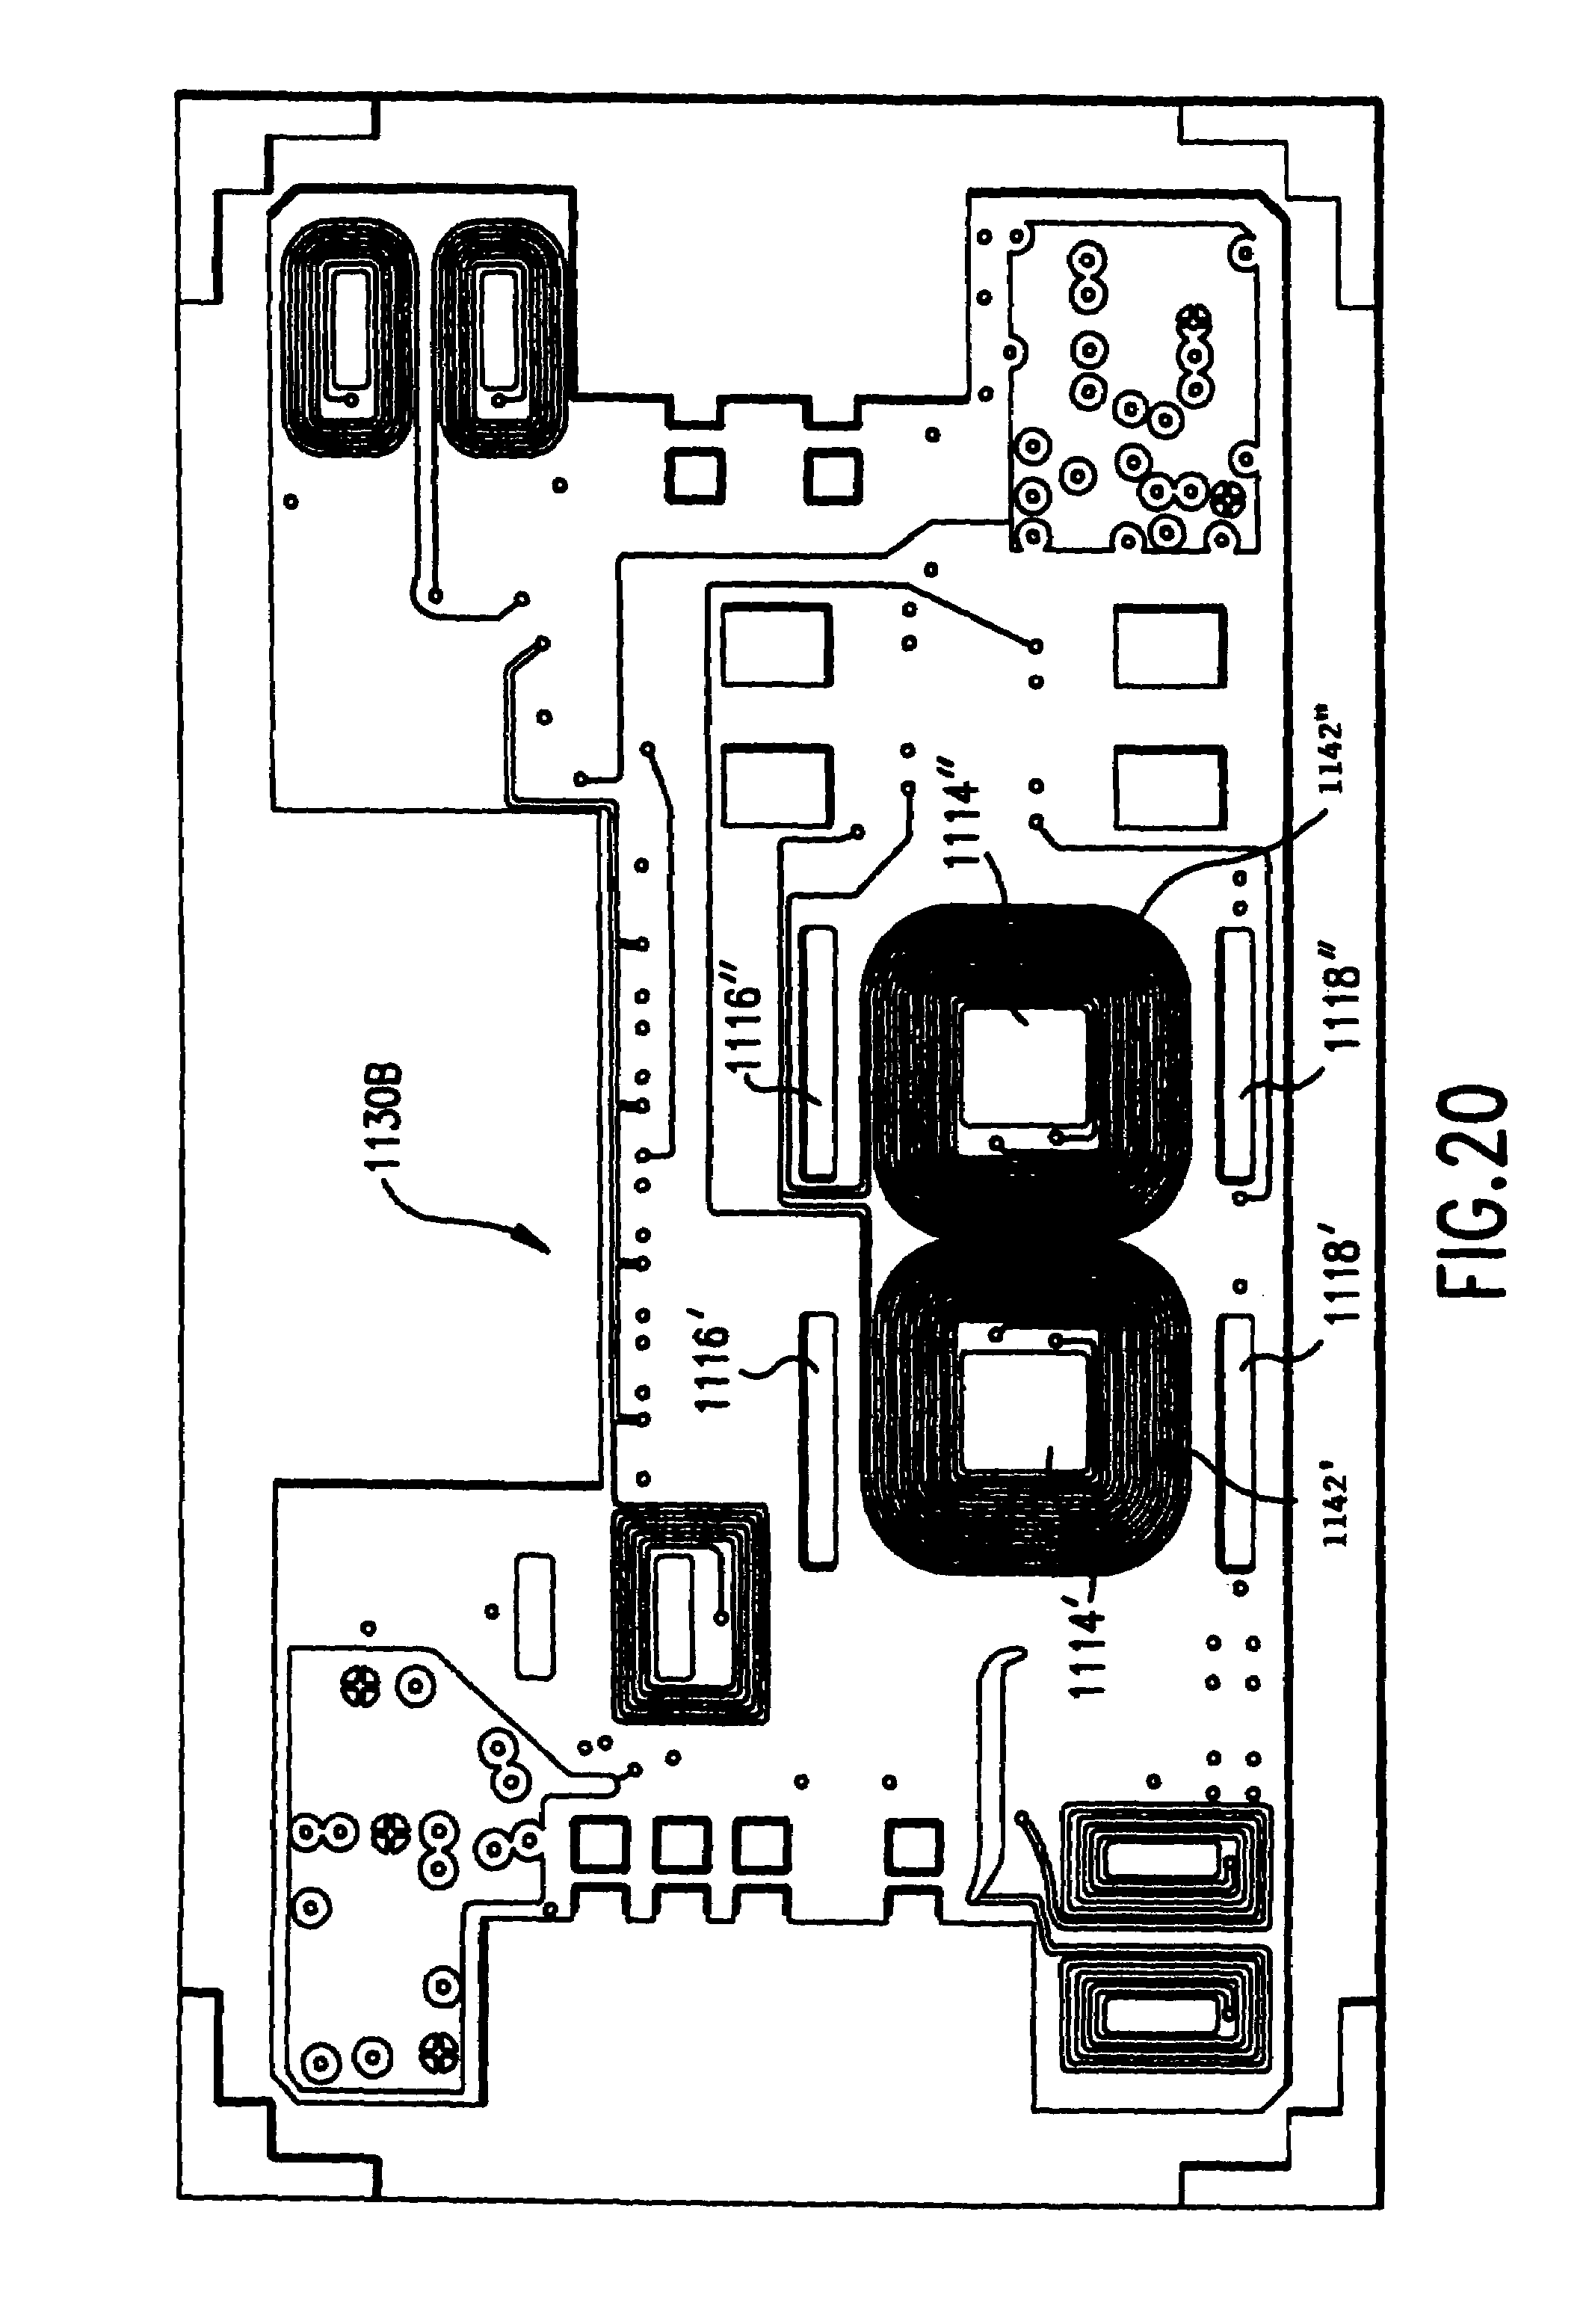 patent us7450403 switching power supply utilizing switch Furnace Transformer Wiring patent drawing